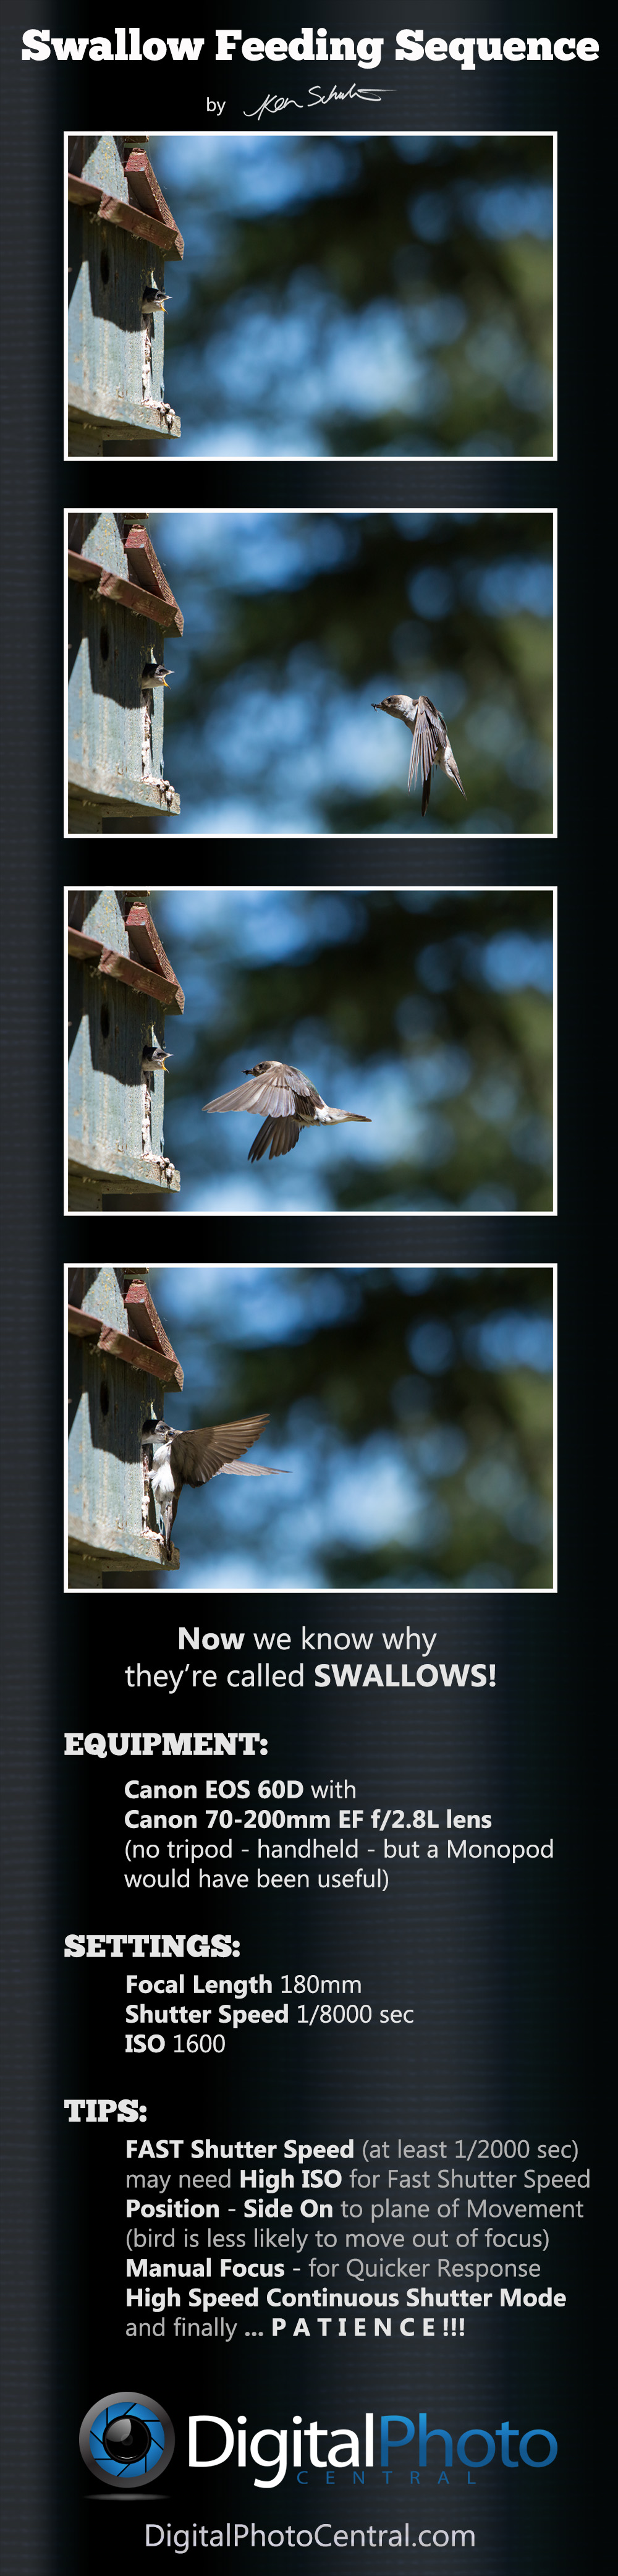 SwallowfeedingSequenceInfo Bird Photography: Swallow Feeding Sequence